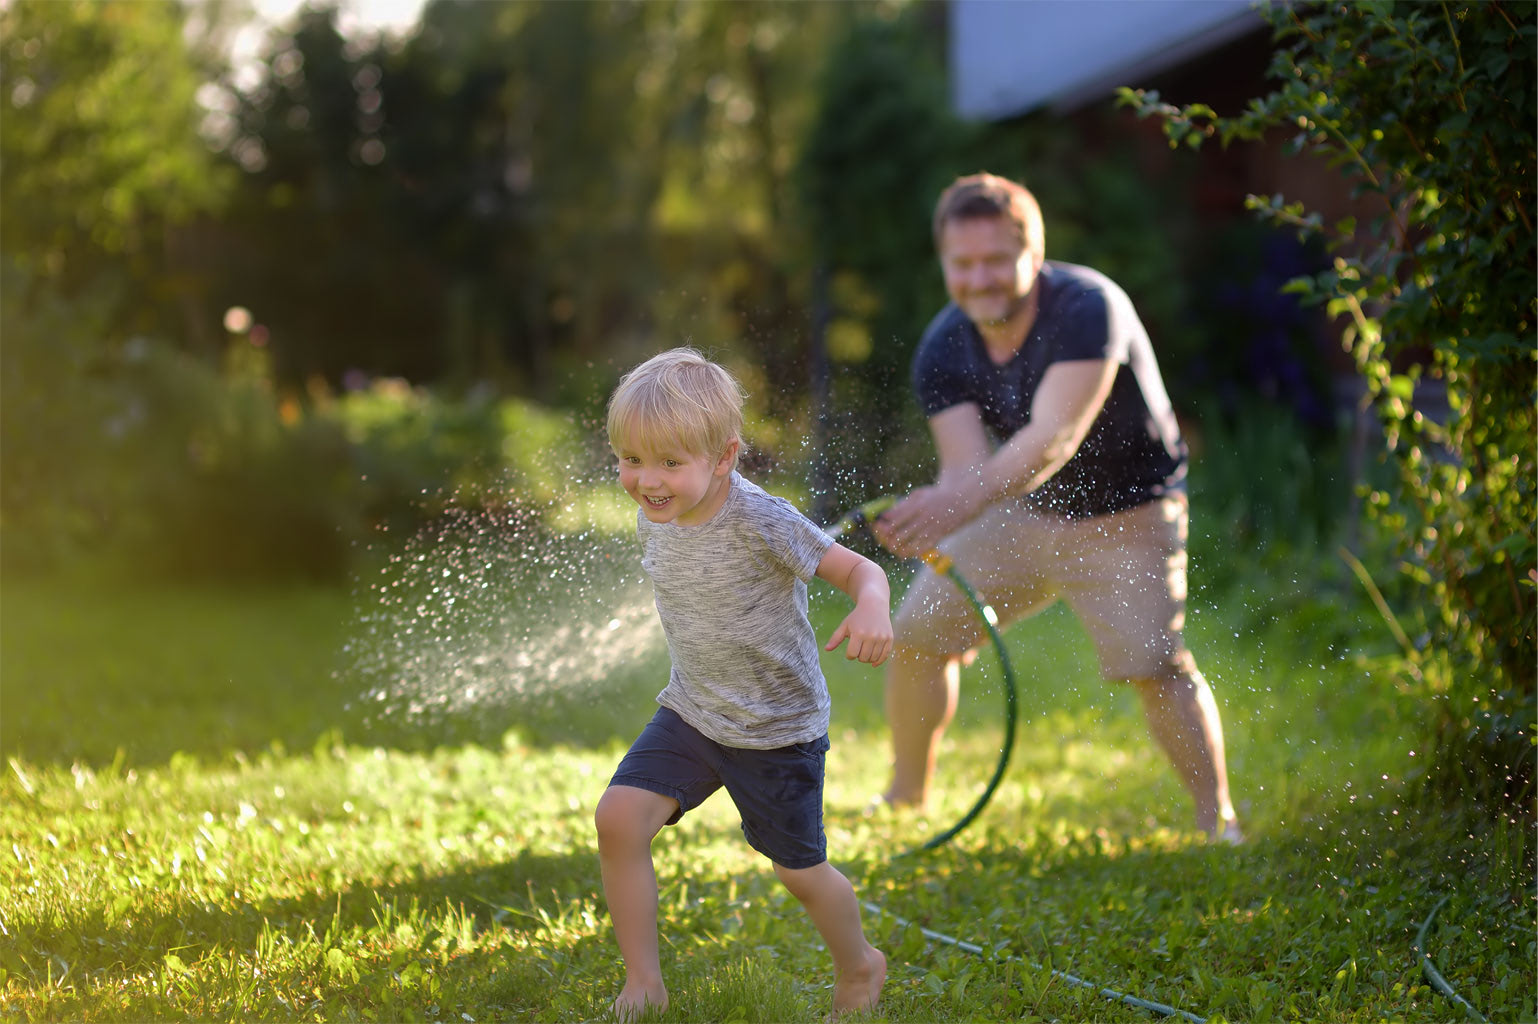 a boy playing in the yard with his father